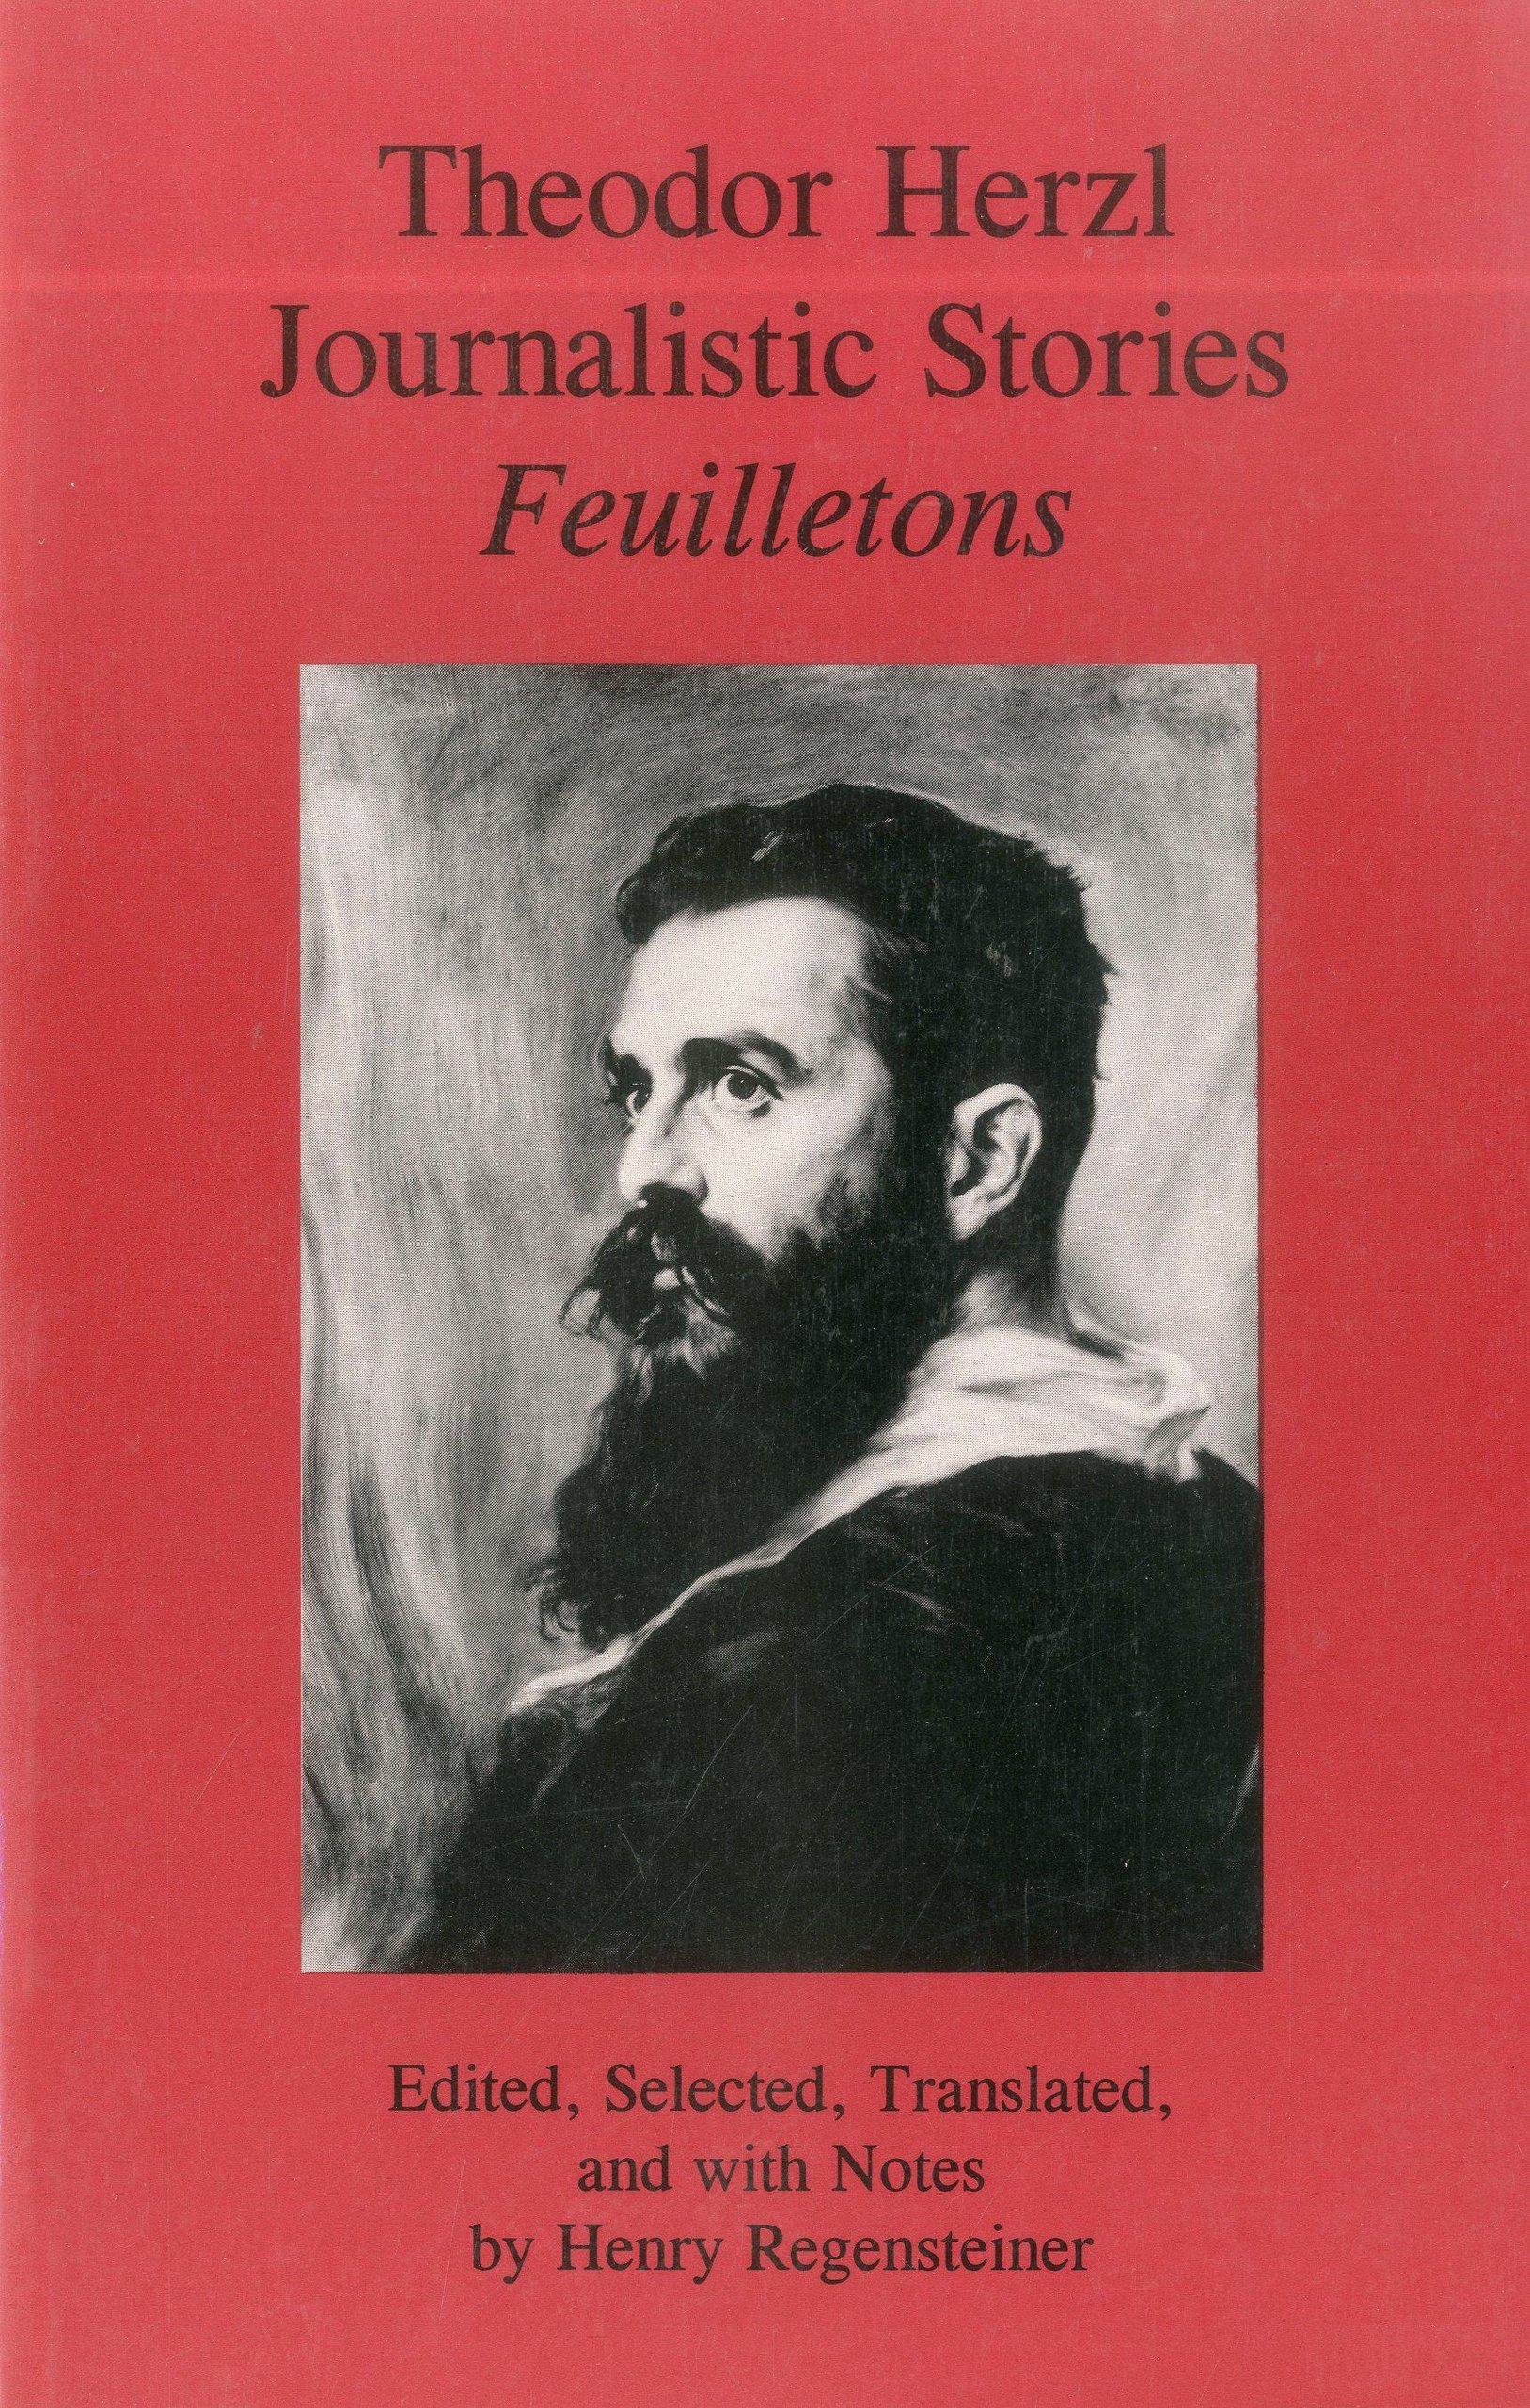 a review of the book old new land by theodore herzl